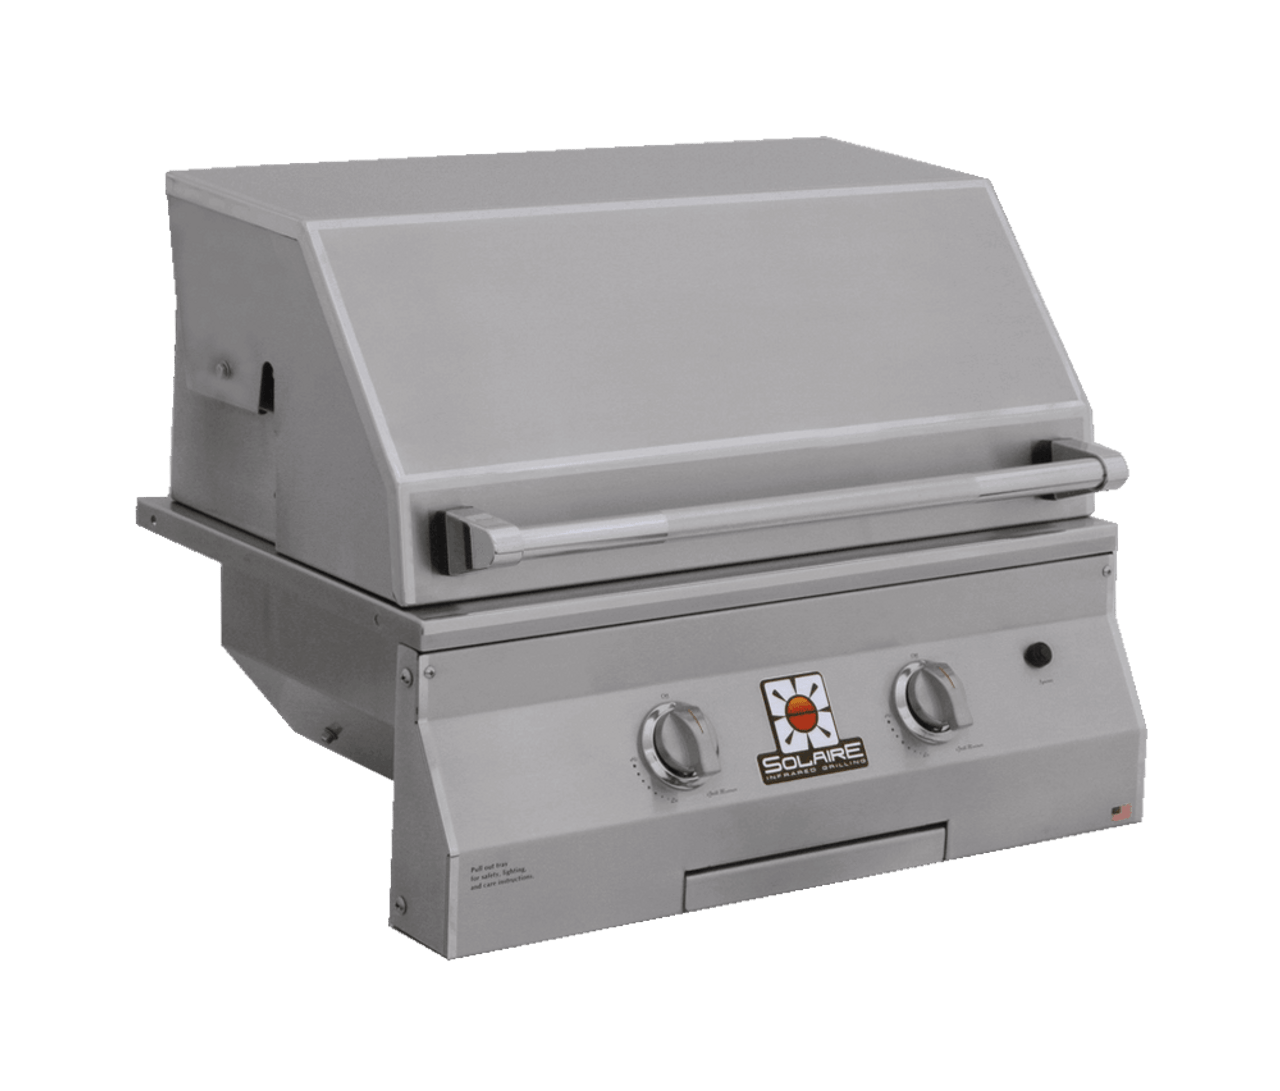 Solaire 27 Inch Grill, Built In, Front View, Hood Down